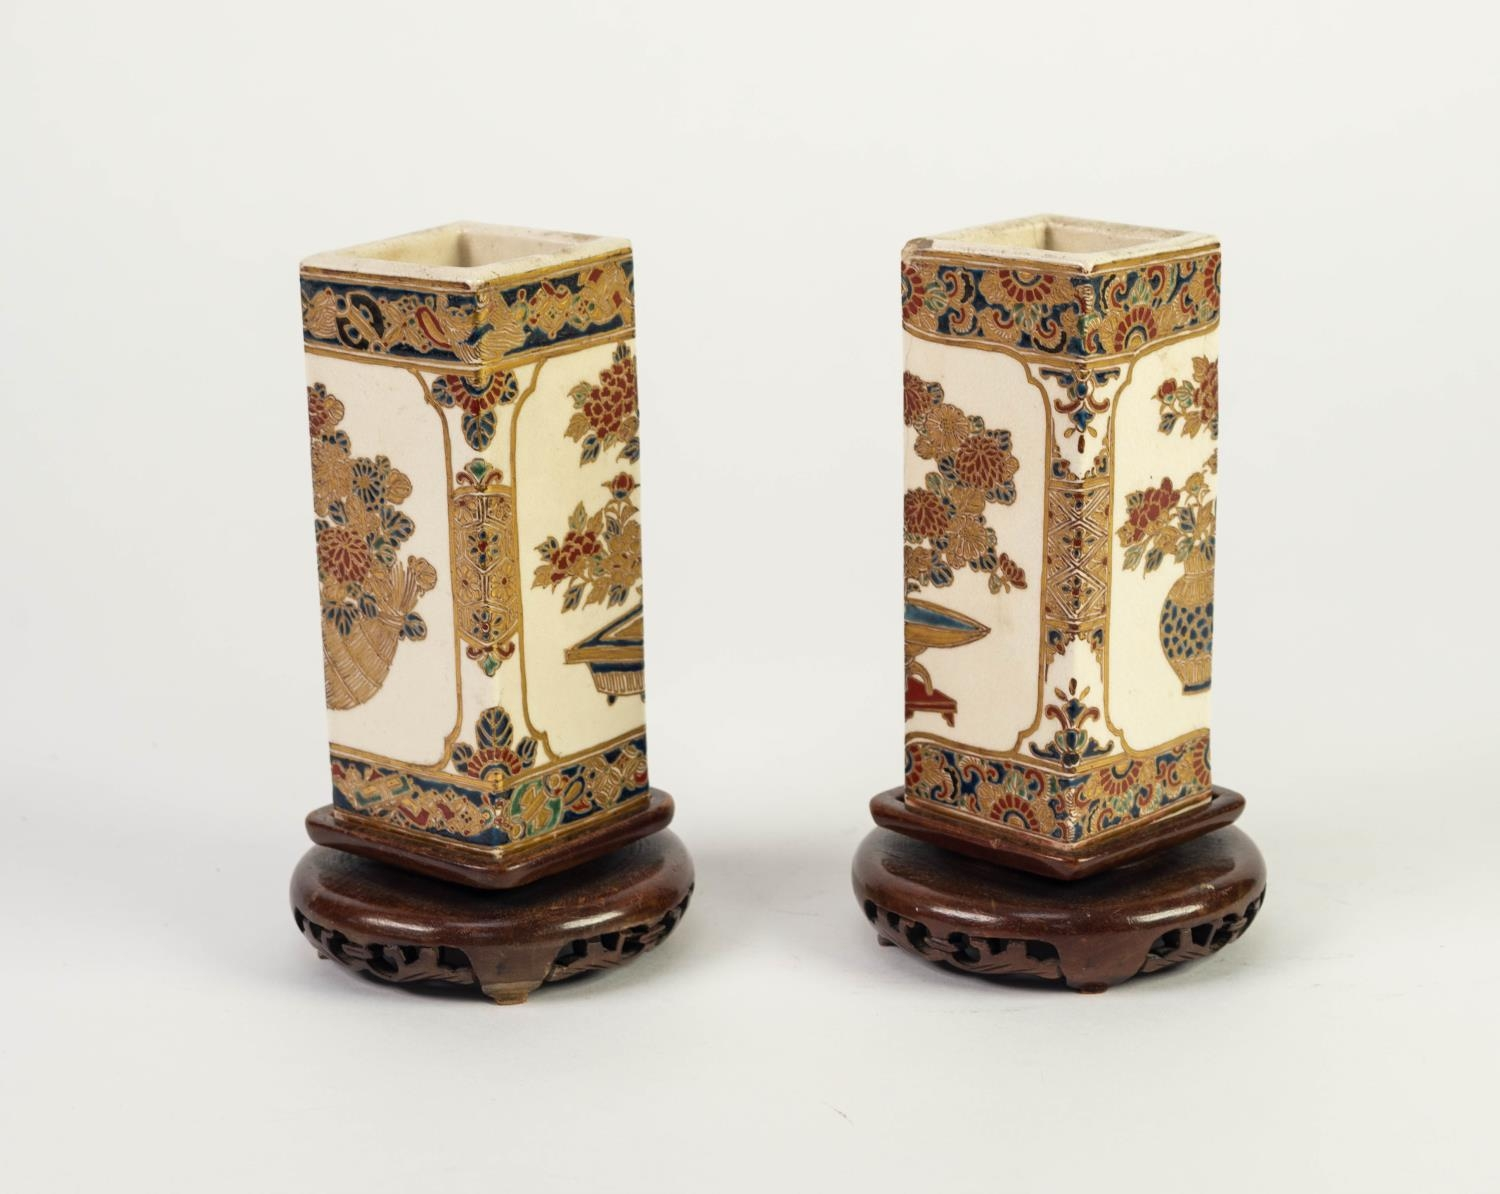 PAIR OF JAPANESE MEIJI PERIOD SATSUMA POTTERY SQUARE SECTION SMALL VASES, each painted with - Image 3 of 4